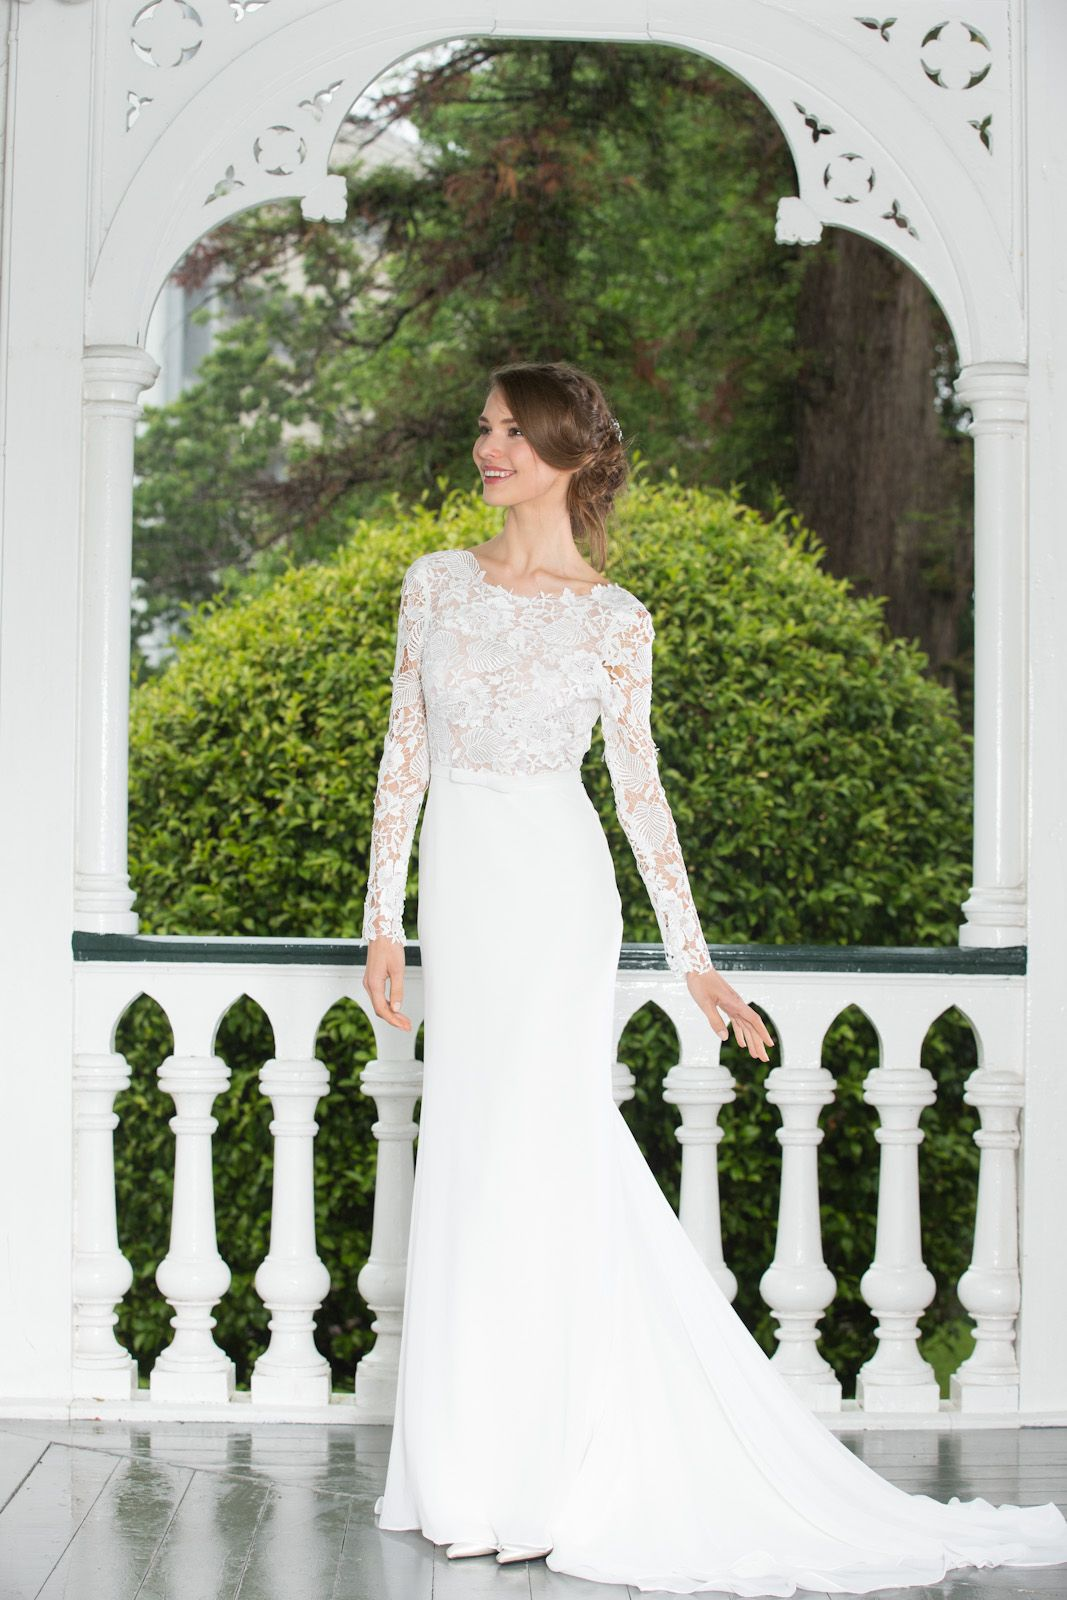 Our wedding dresses Wedding dresses, Wedding dress